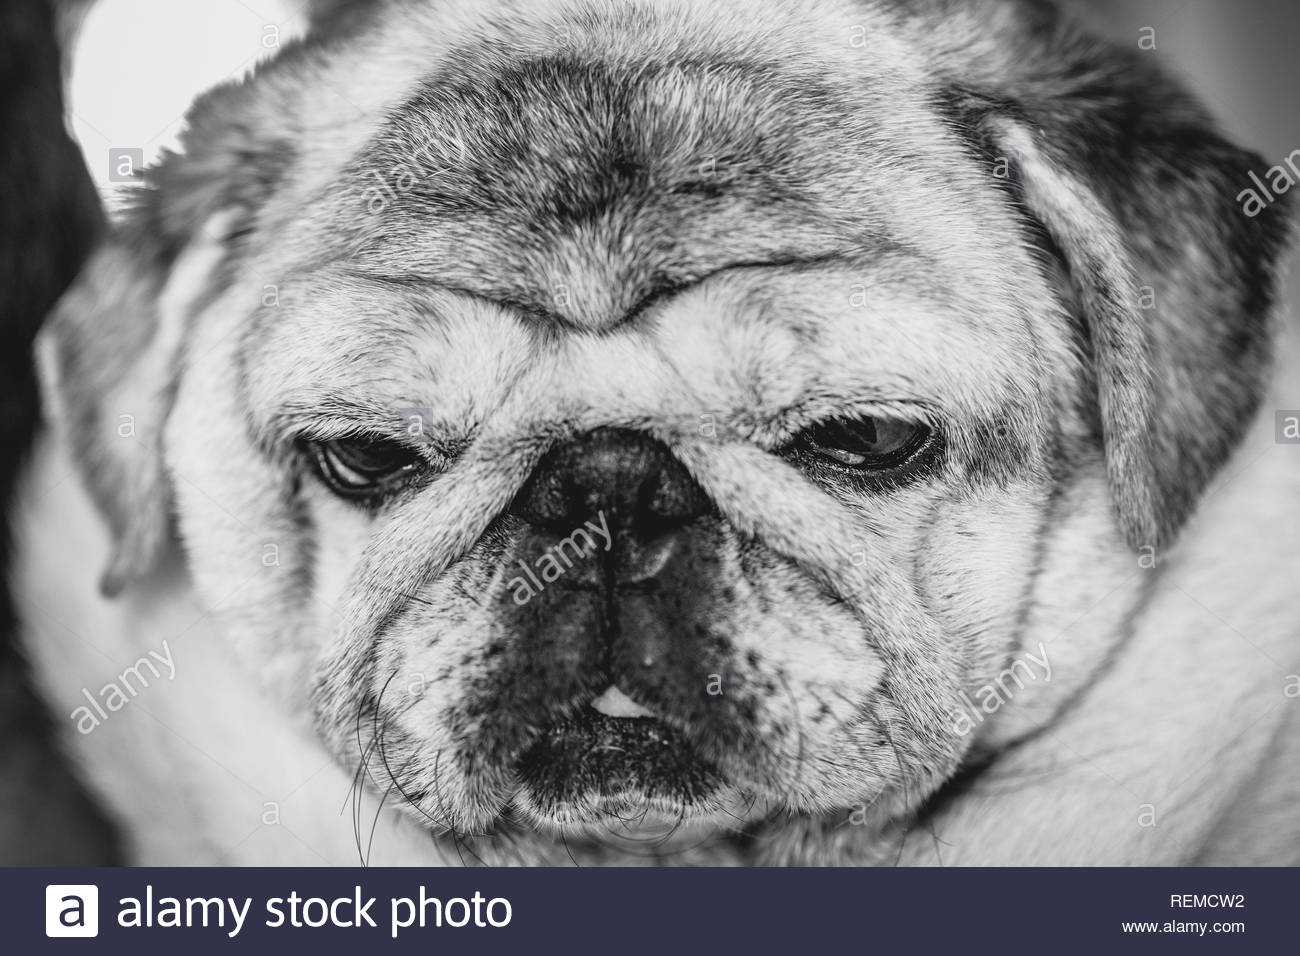 Close Up Face Headshot of Pug dog. Fat dog with many wrinkles on his face. Dog with funny face. Stock Photo